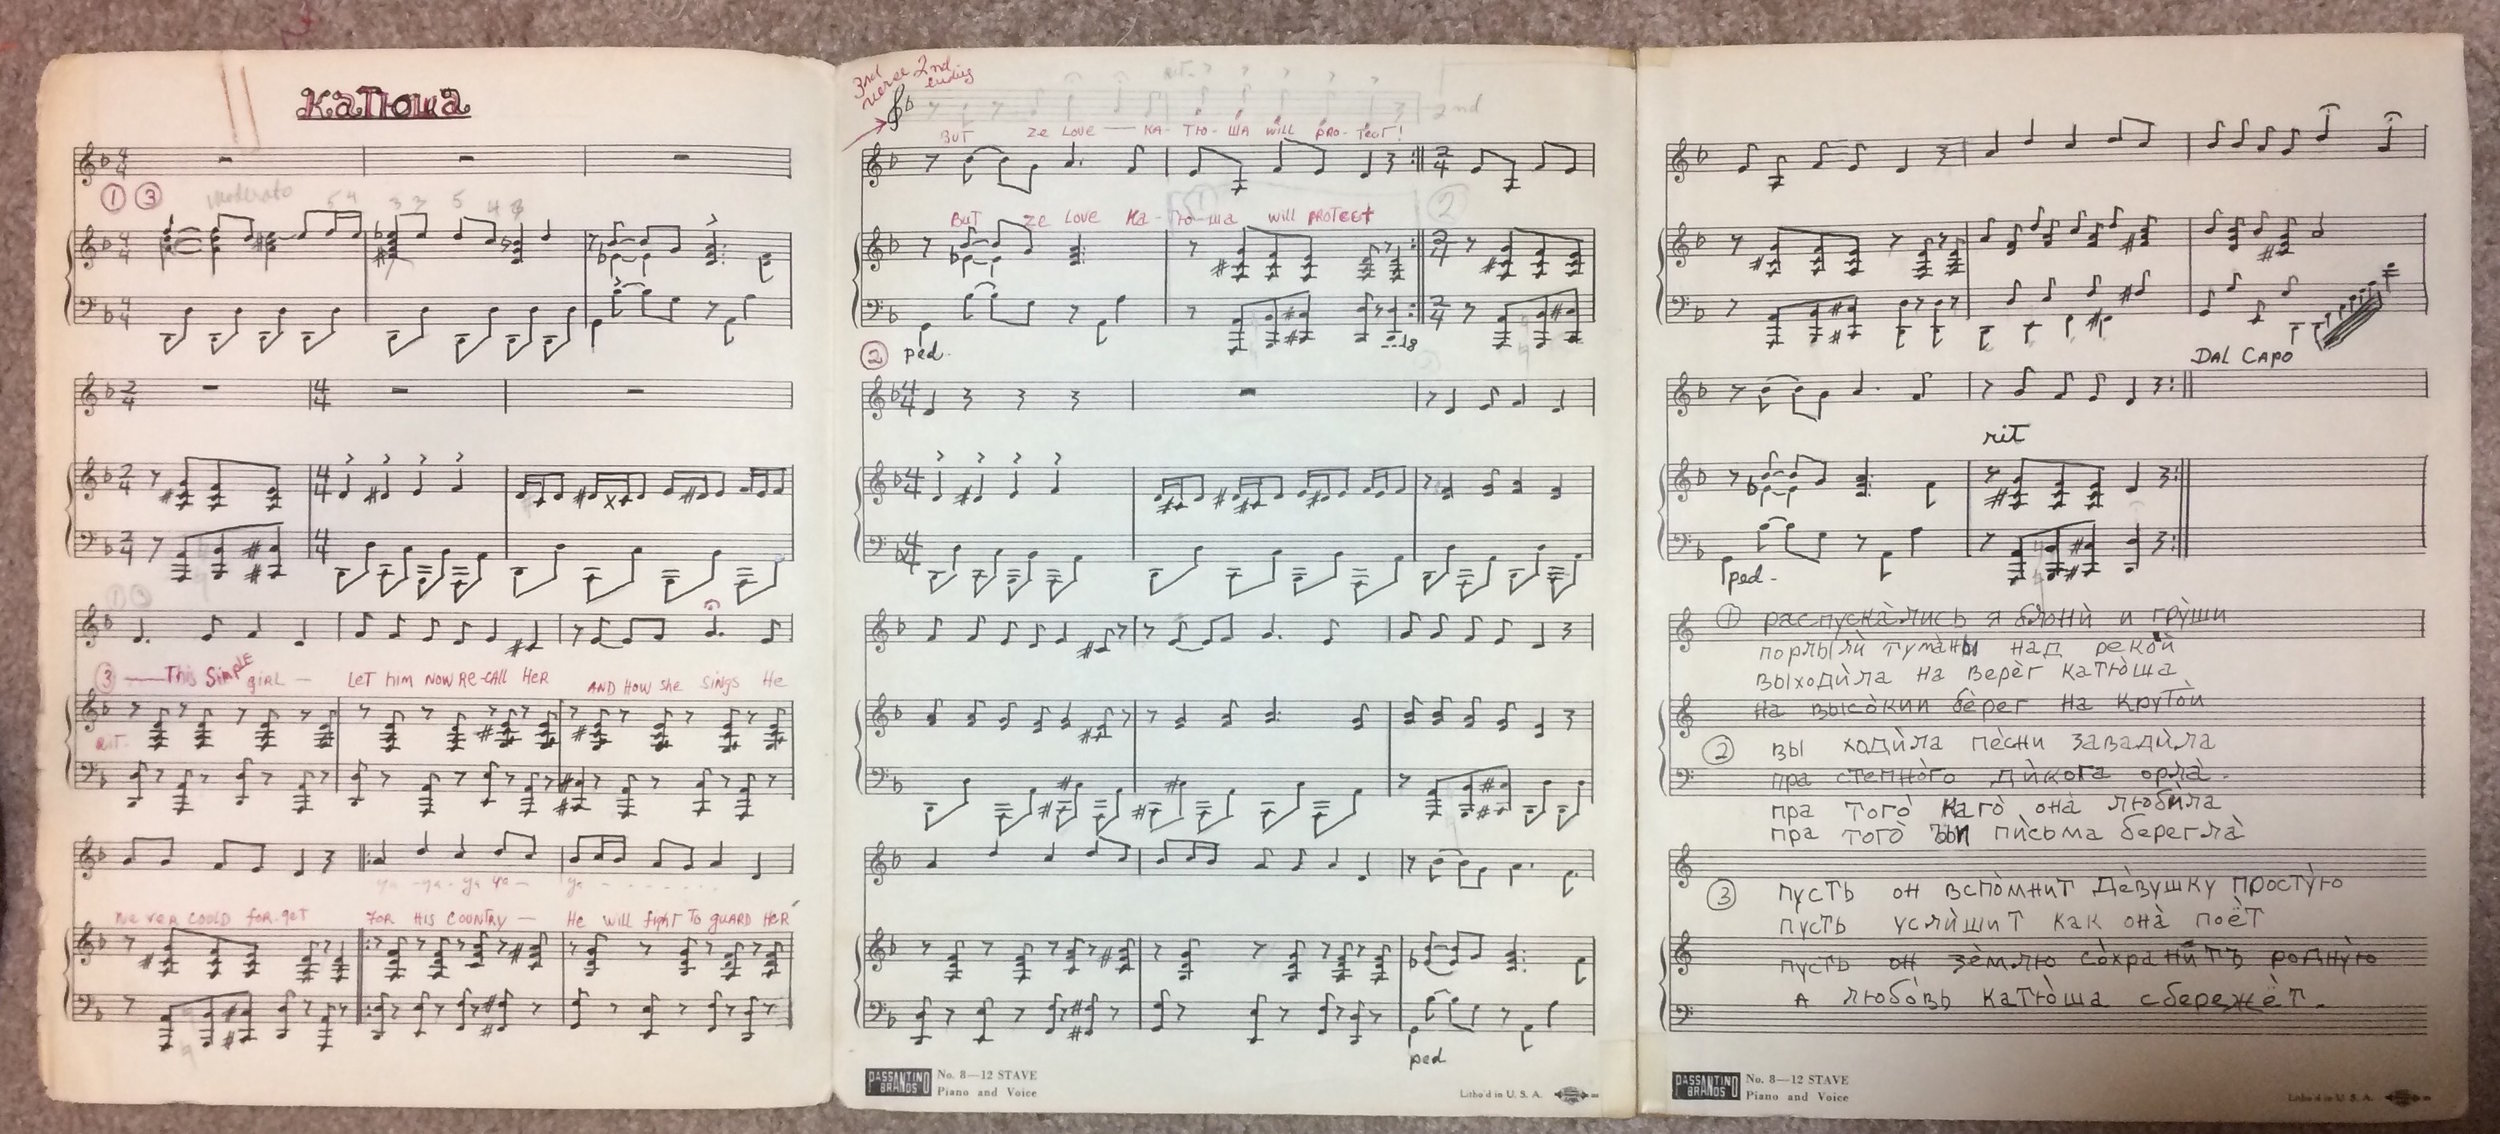 Salama's handwritten transcription of  Katyusha . You can hear Virginia playing this same piano arrangement in the recording for the quilt. Her handwriting is in red, writing a few english words out over the melody.